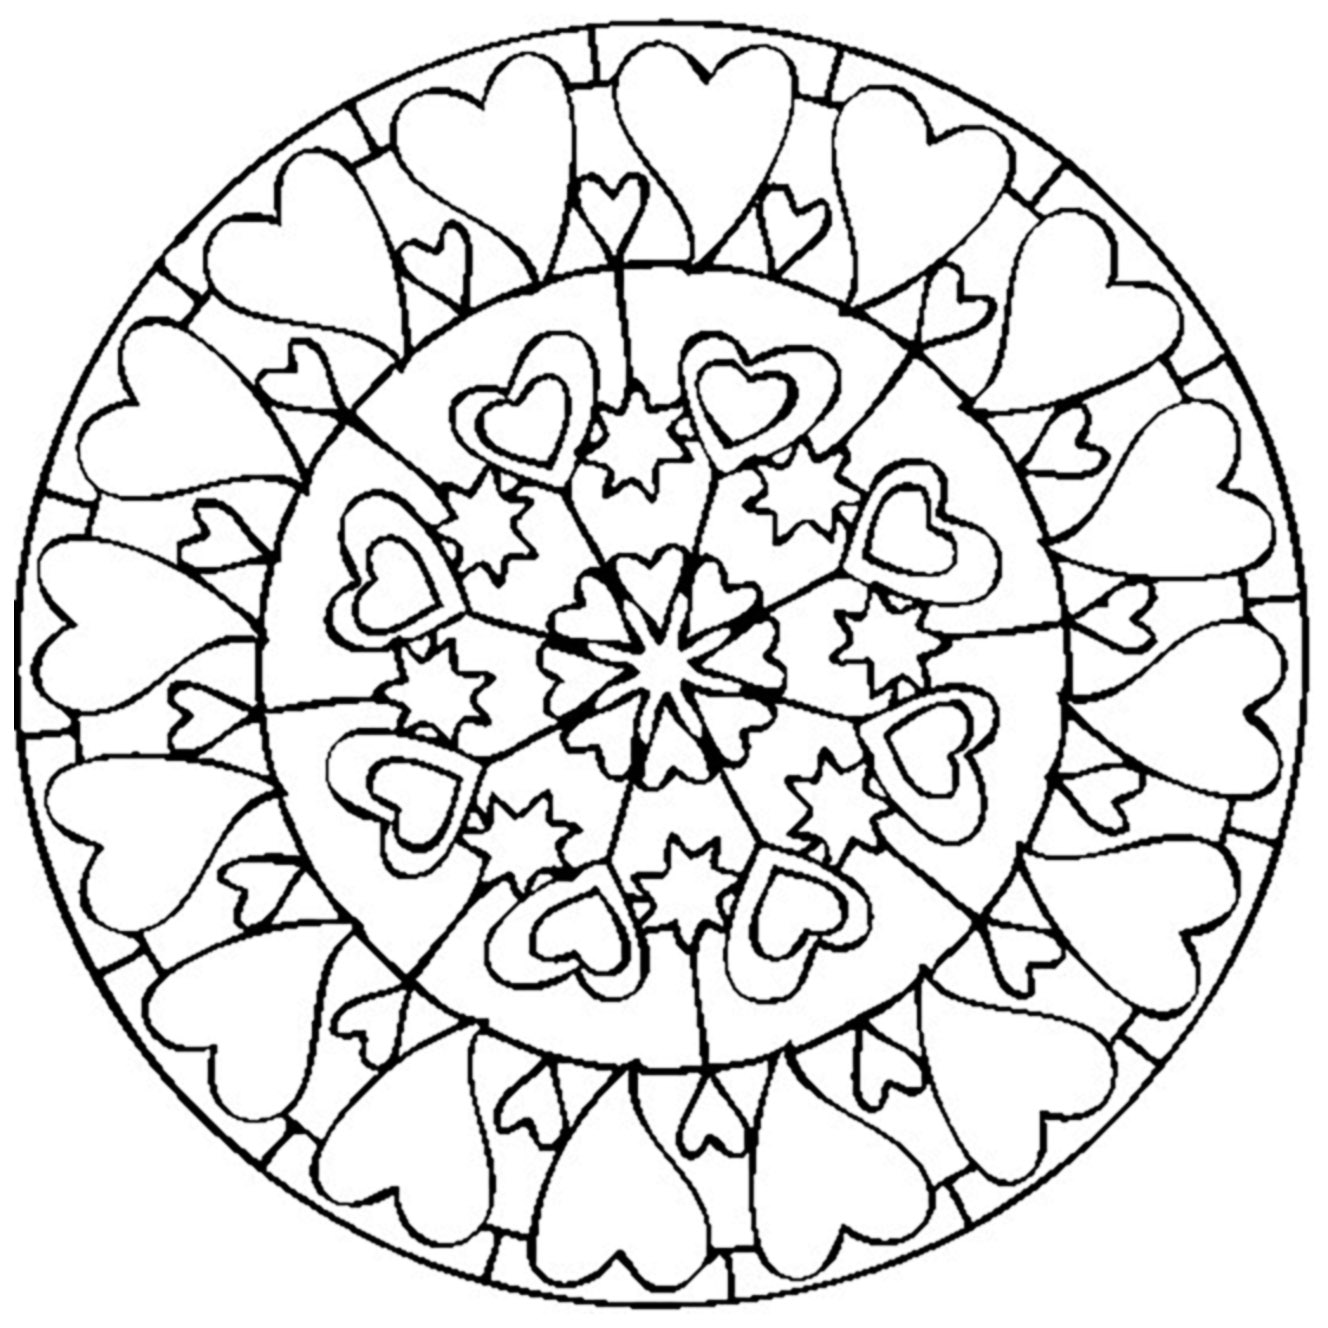 Mandala valentines day love m alas adult coloring pages for Love mandala coloring pages